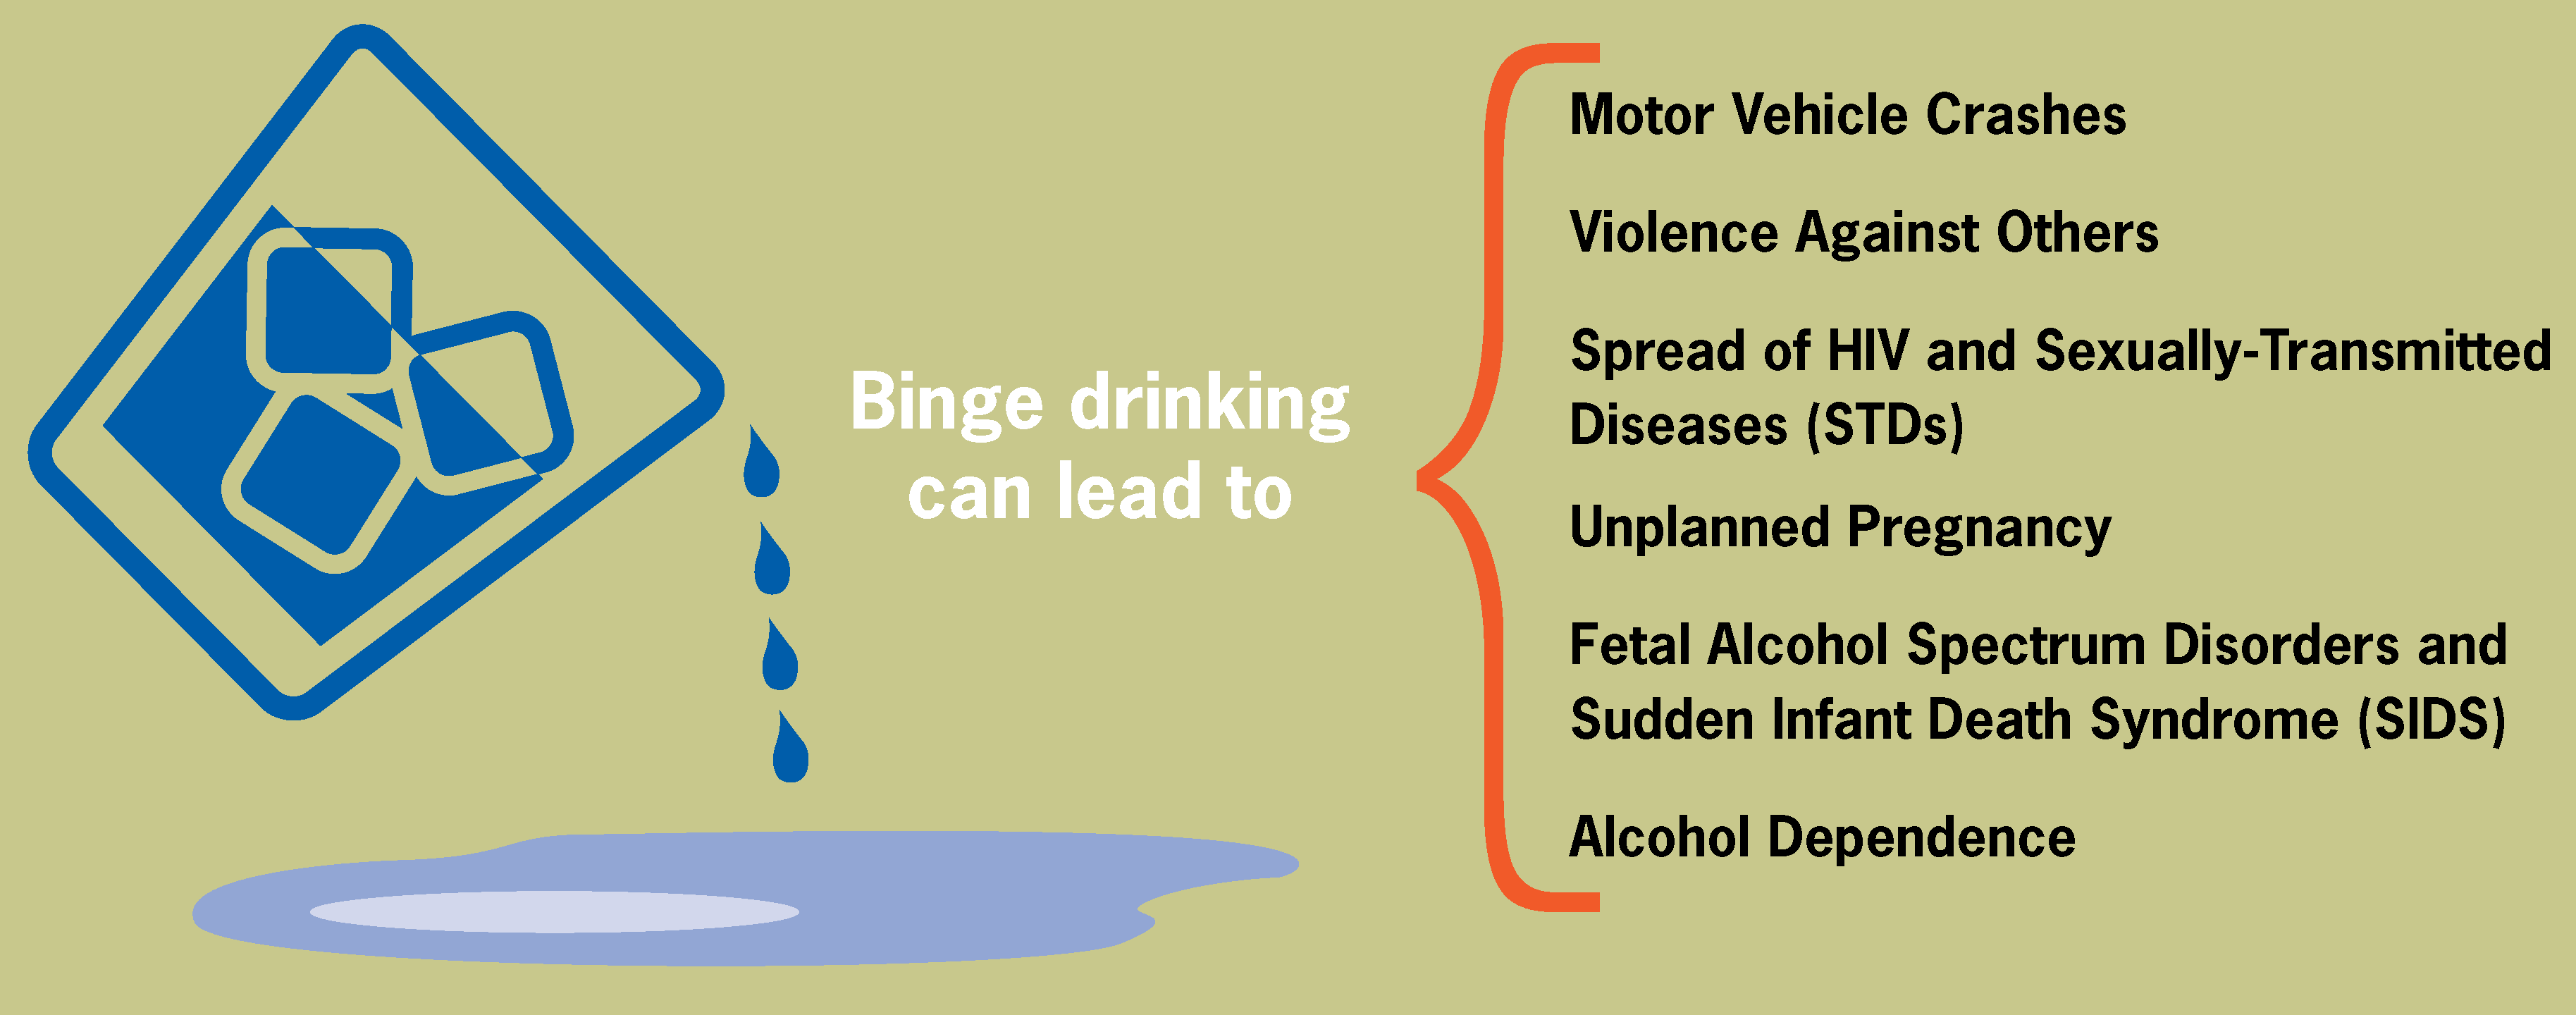 the controversial norm of binge drinking in college – the rider news